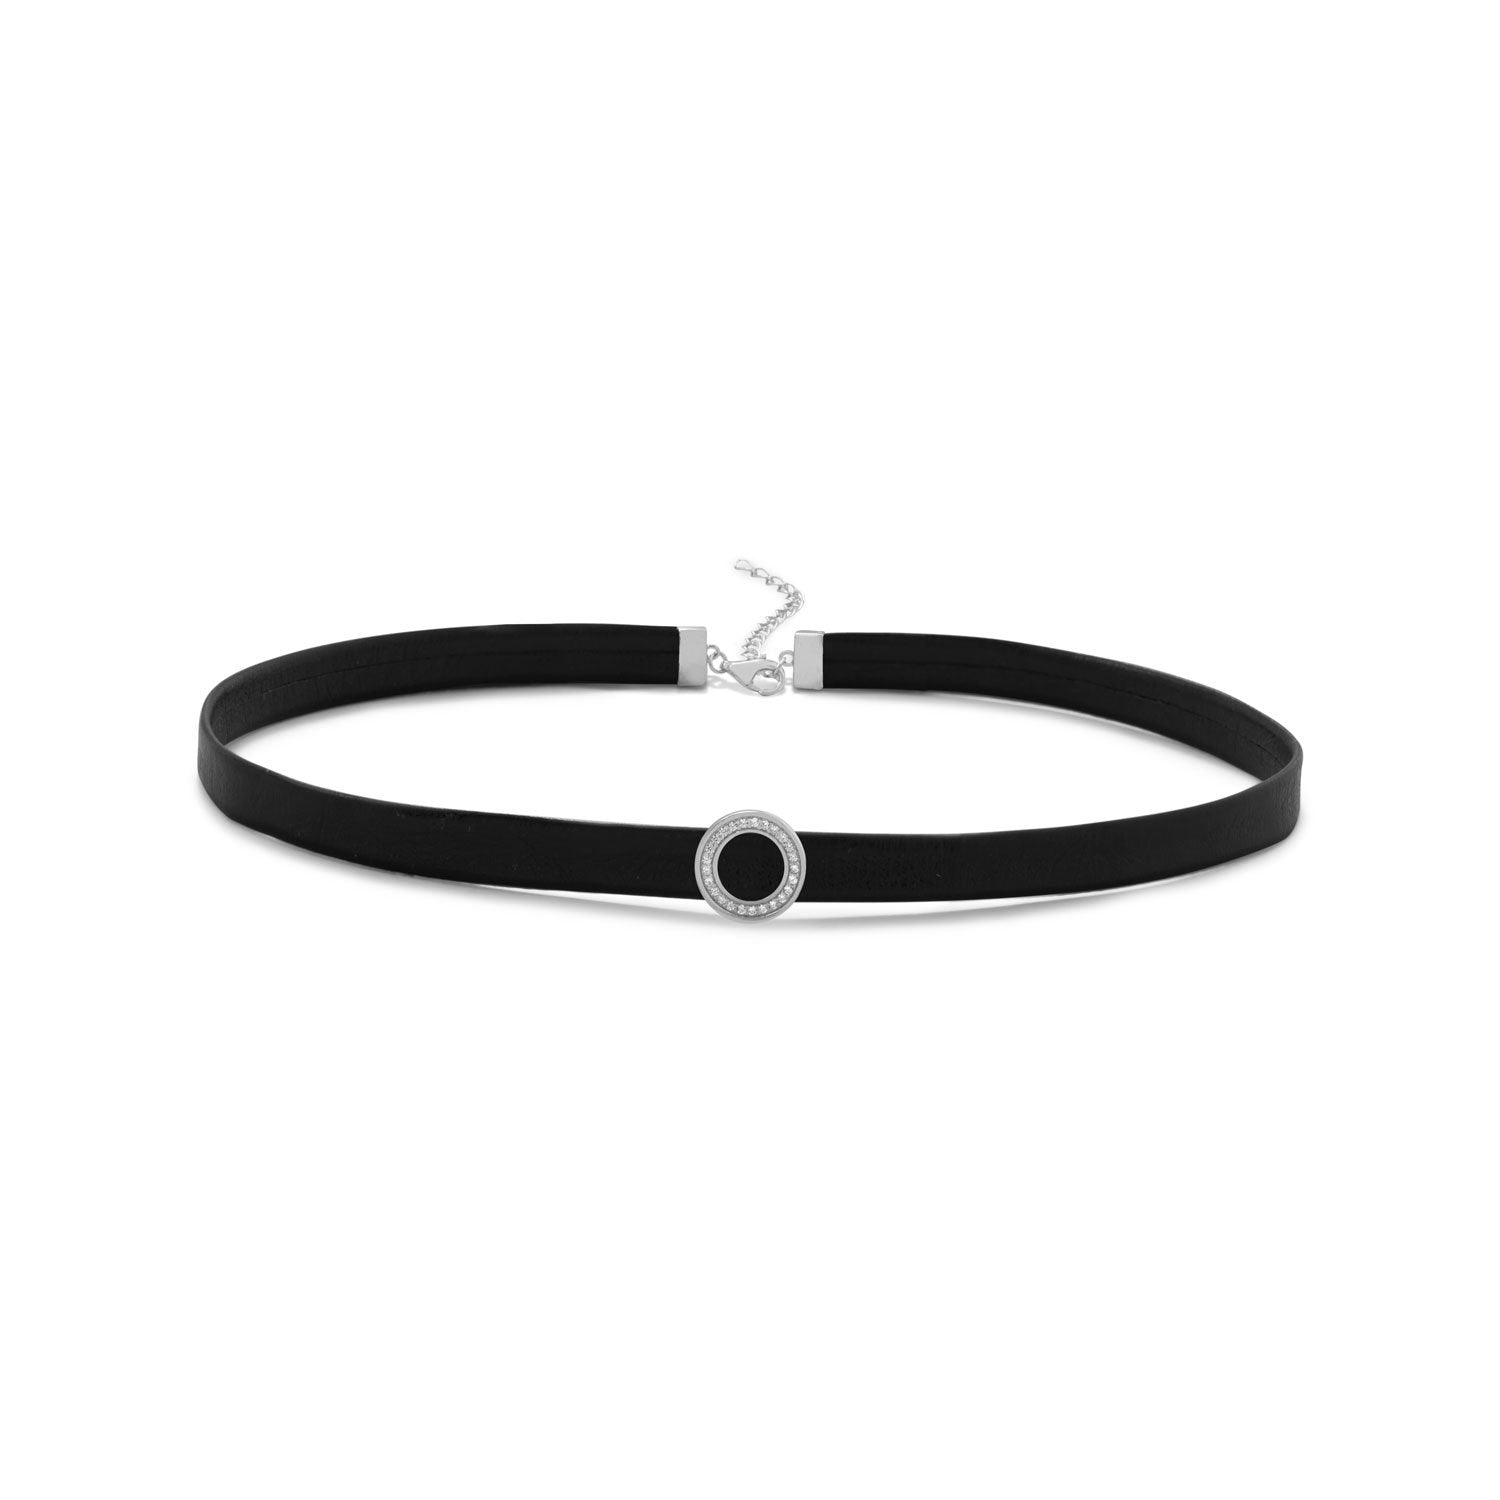 Rhodium Plated CZ Circle Black Leather Choker Necklace